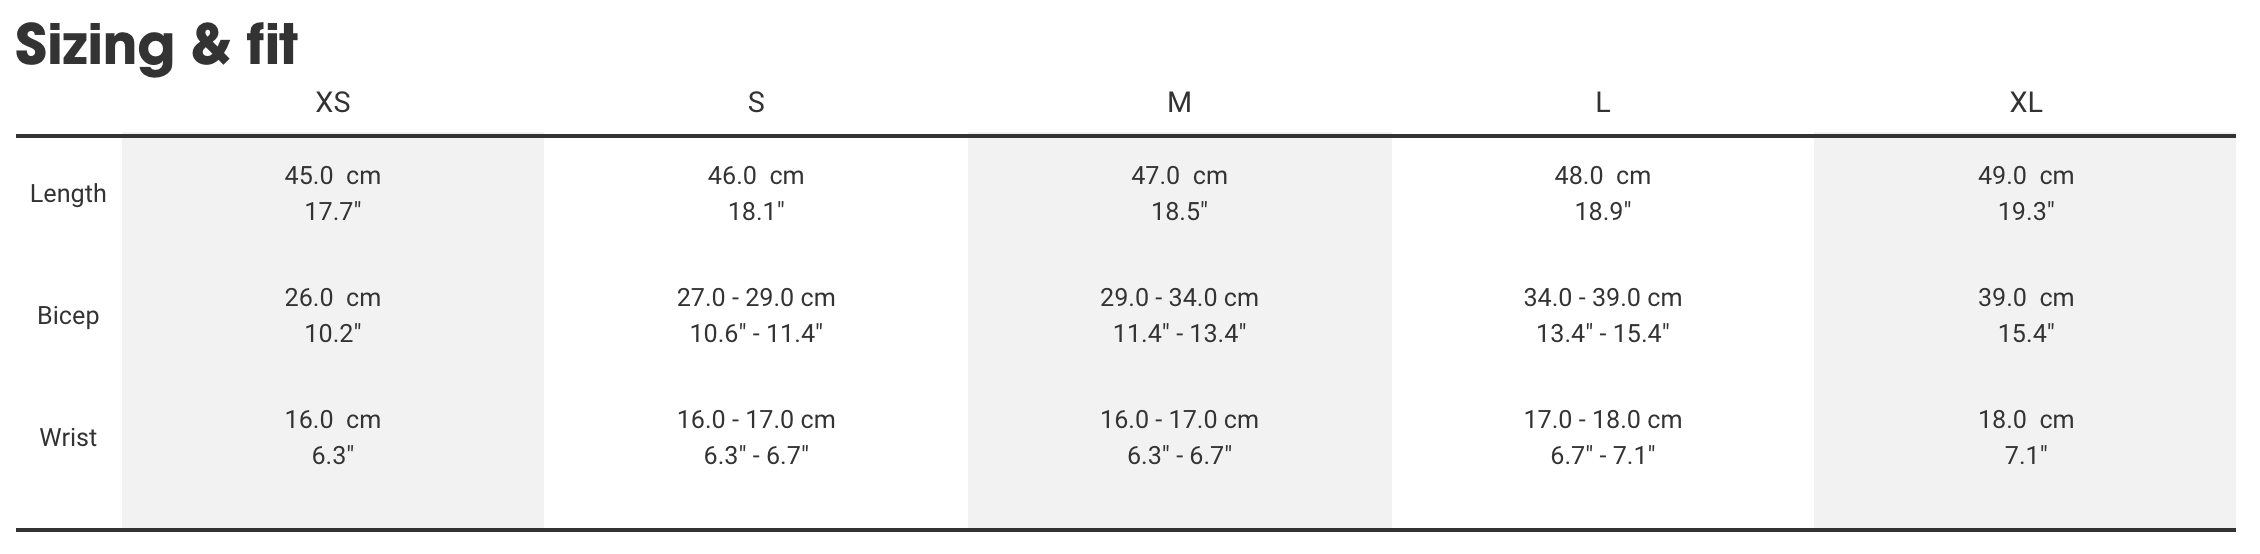 Bontrager arms sizing chart